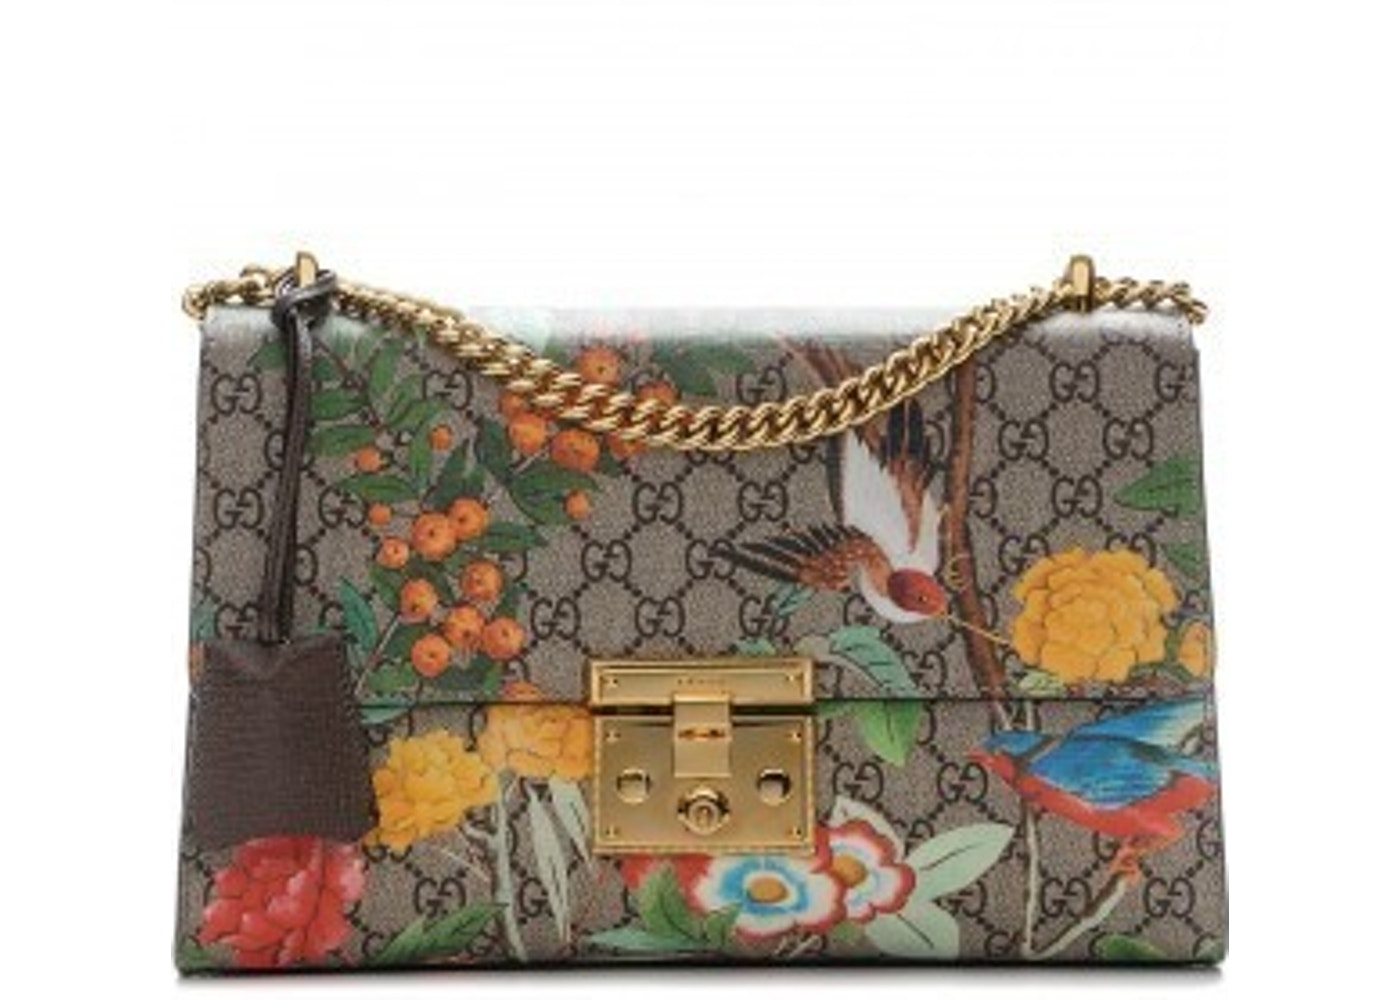 34277afc4e4 Gucci Padlock Shoulder GG Supreme Monogram Tian Print Medium ...